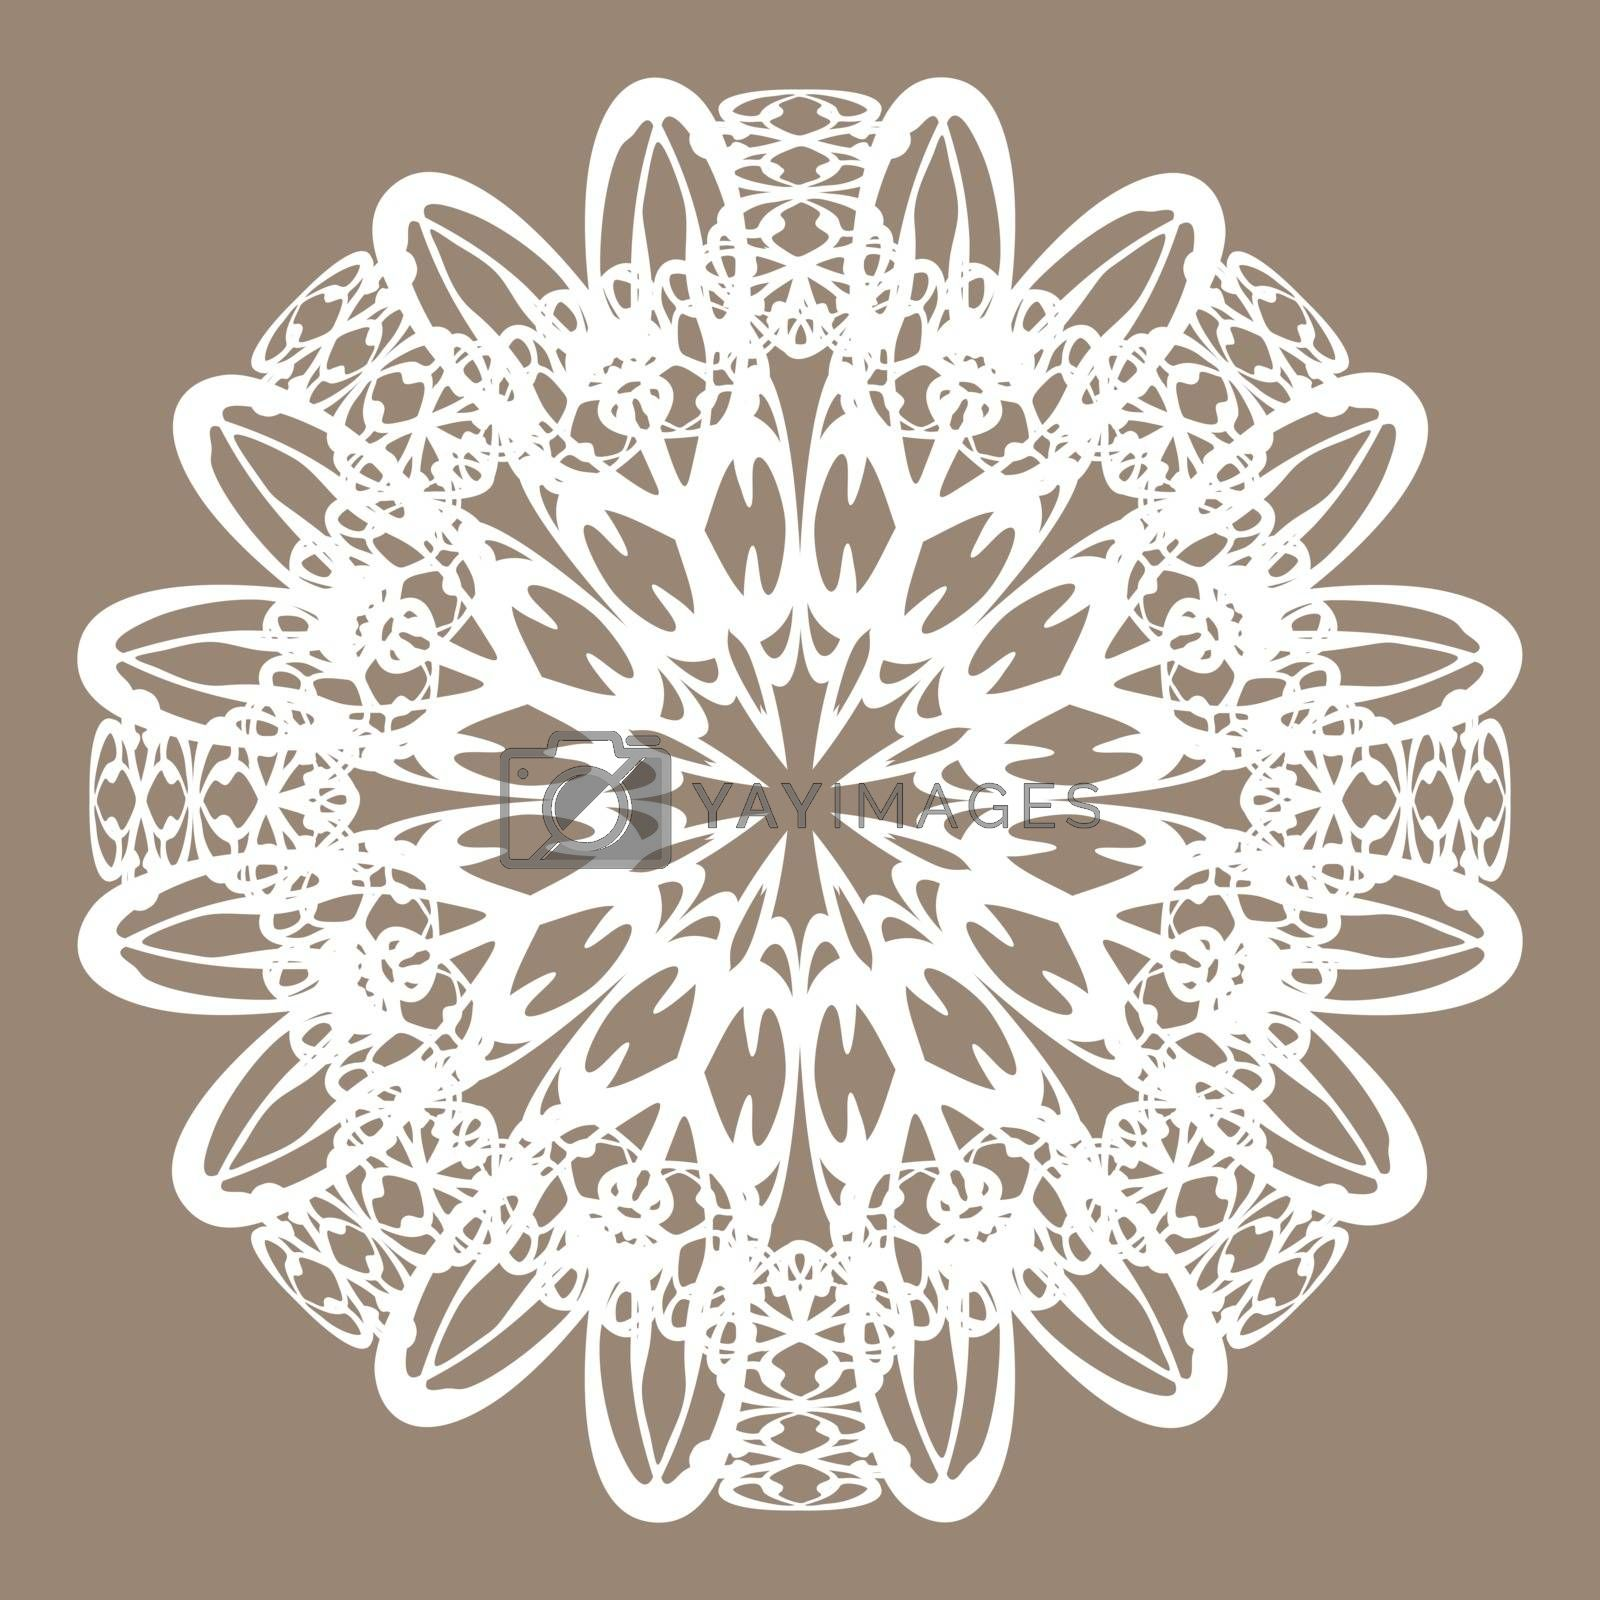 Ornate white lace madnala or vintage doily on beige background